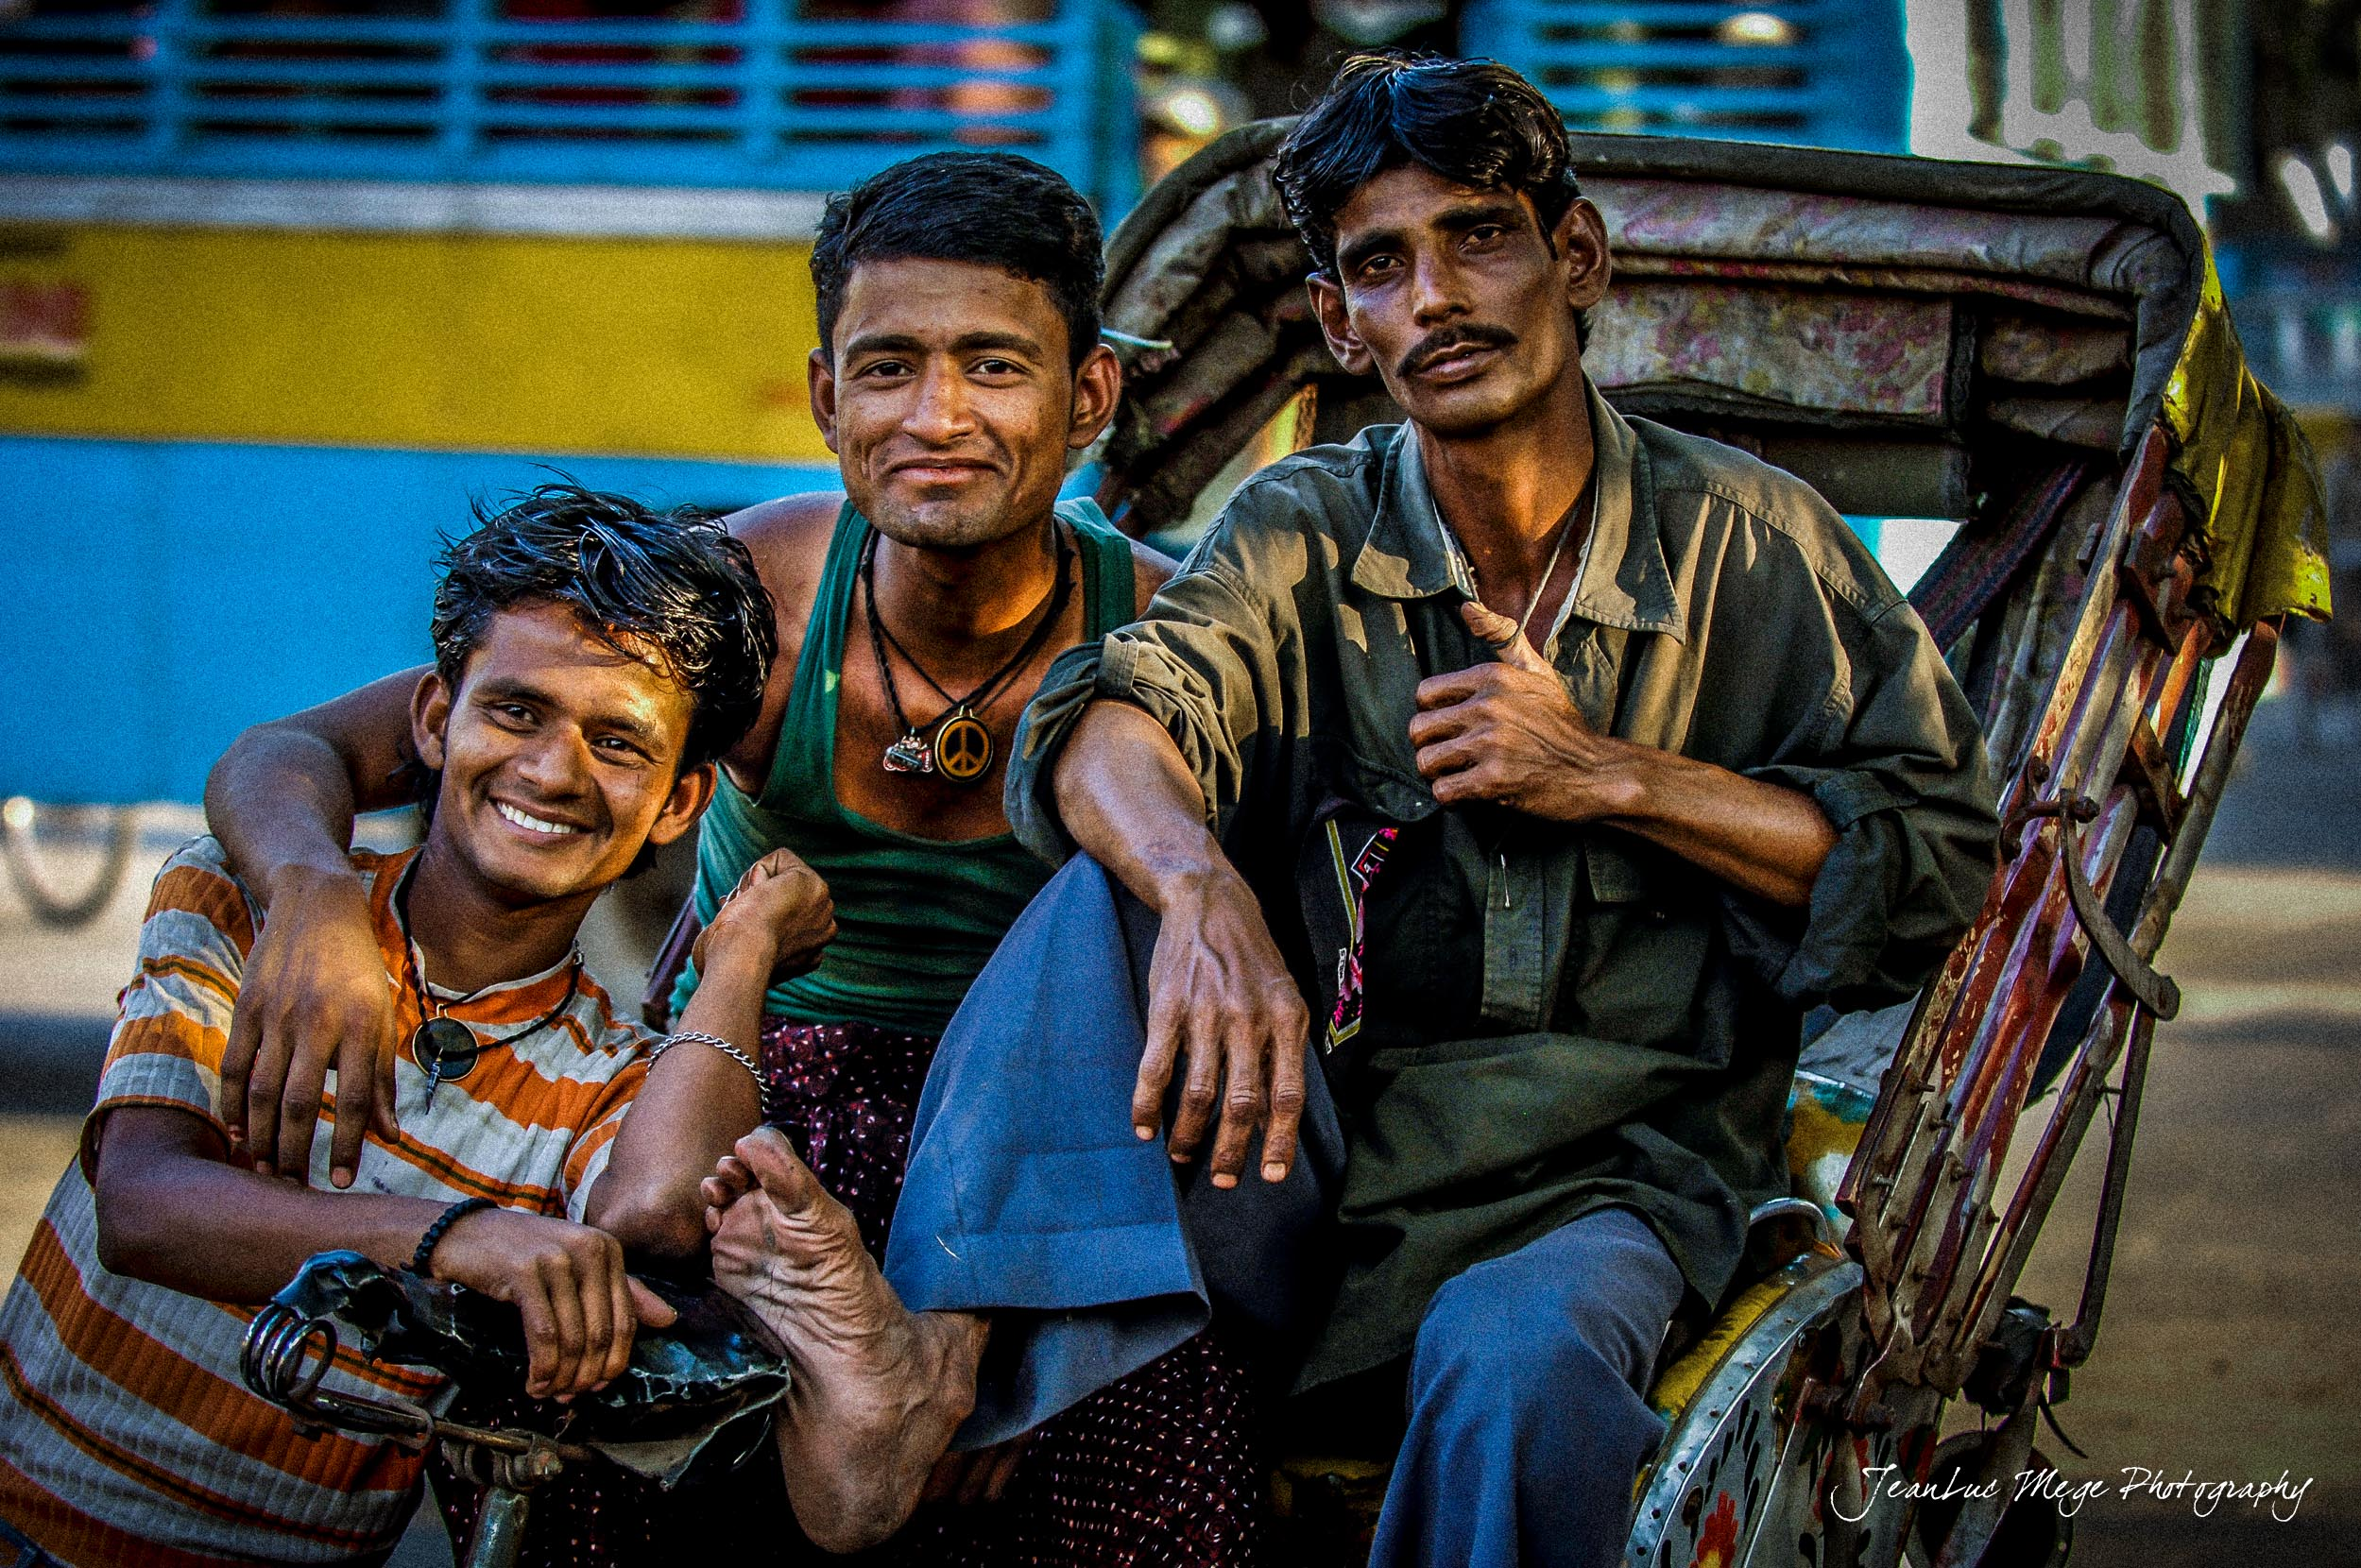 Streets of India©jeanlucmege-5159.jpg